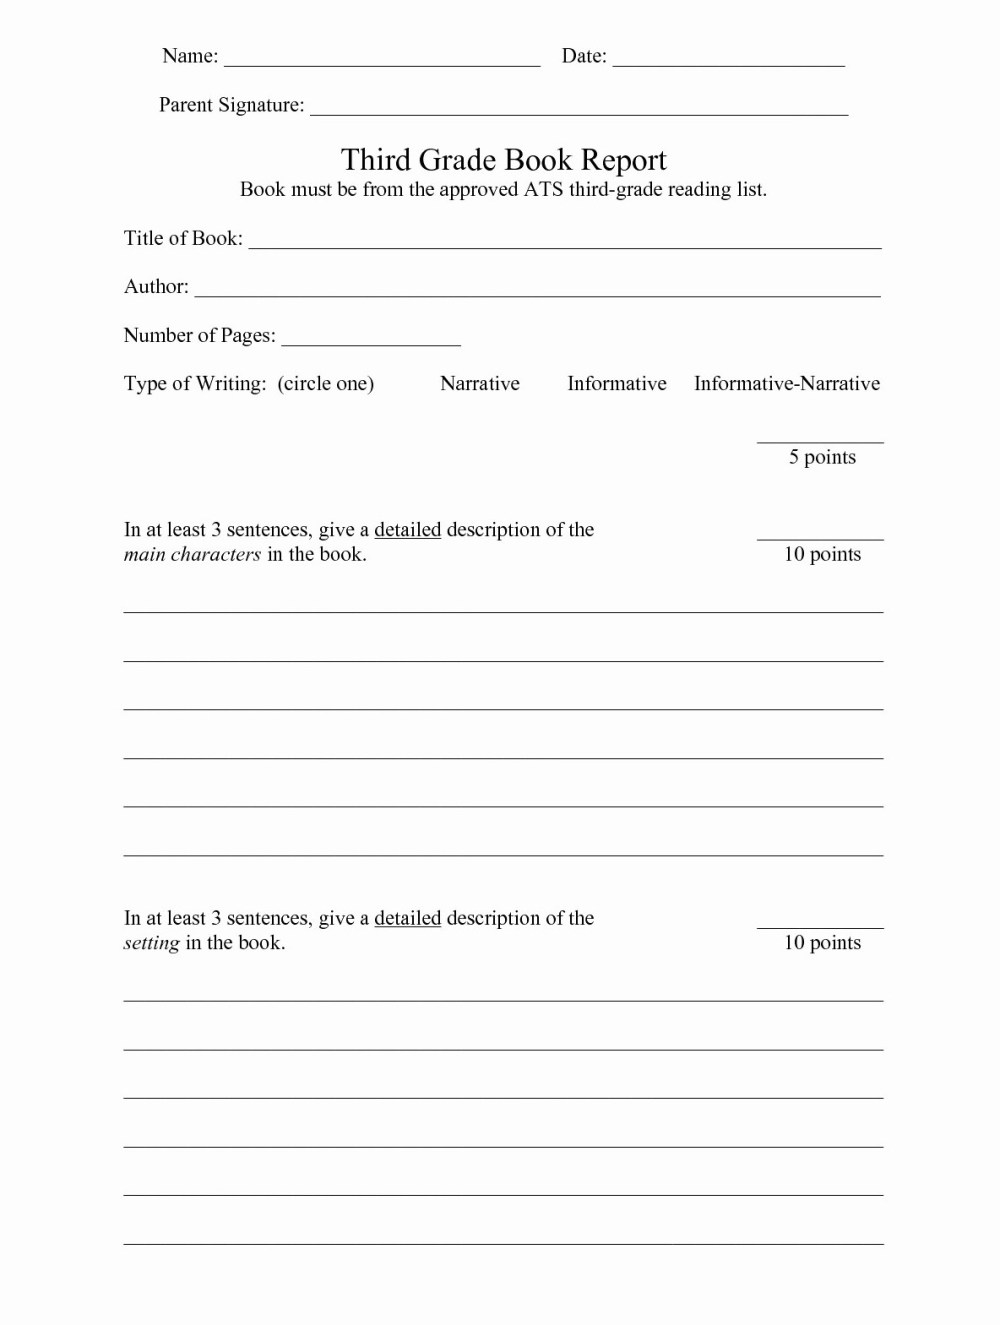 medium resolution of 3rd Grade Book Report Worksheet   Printable Worksheets and Activities for  Teachers